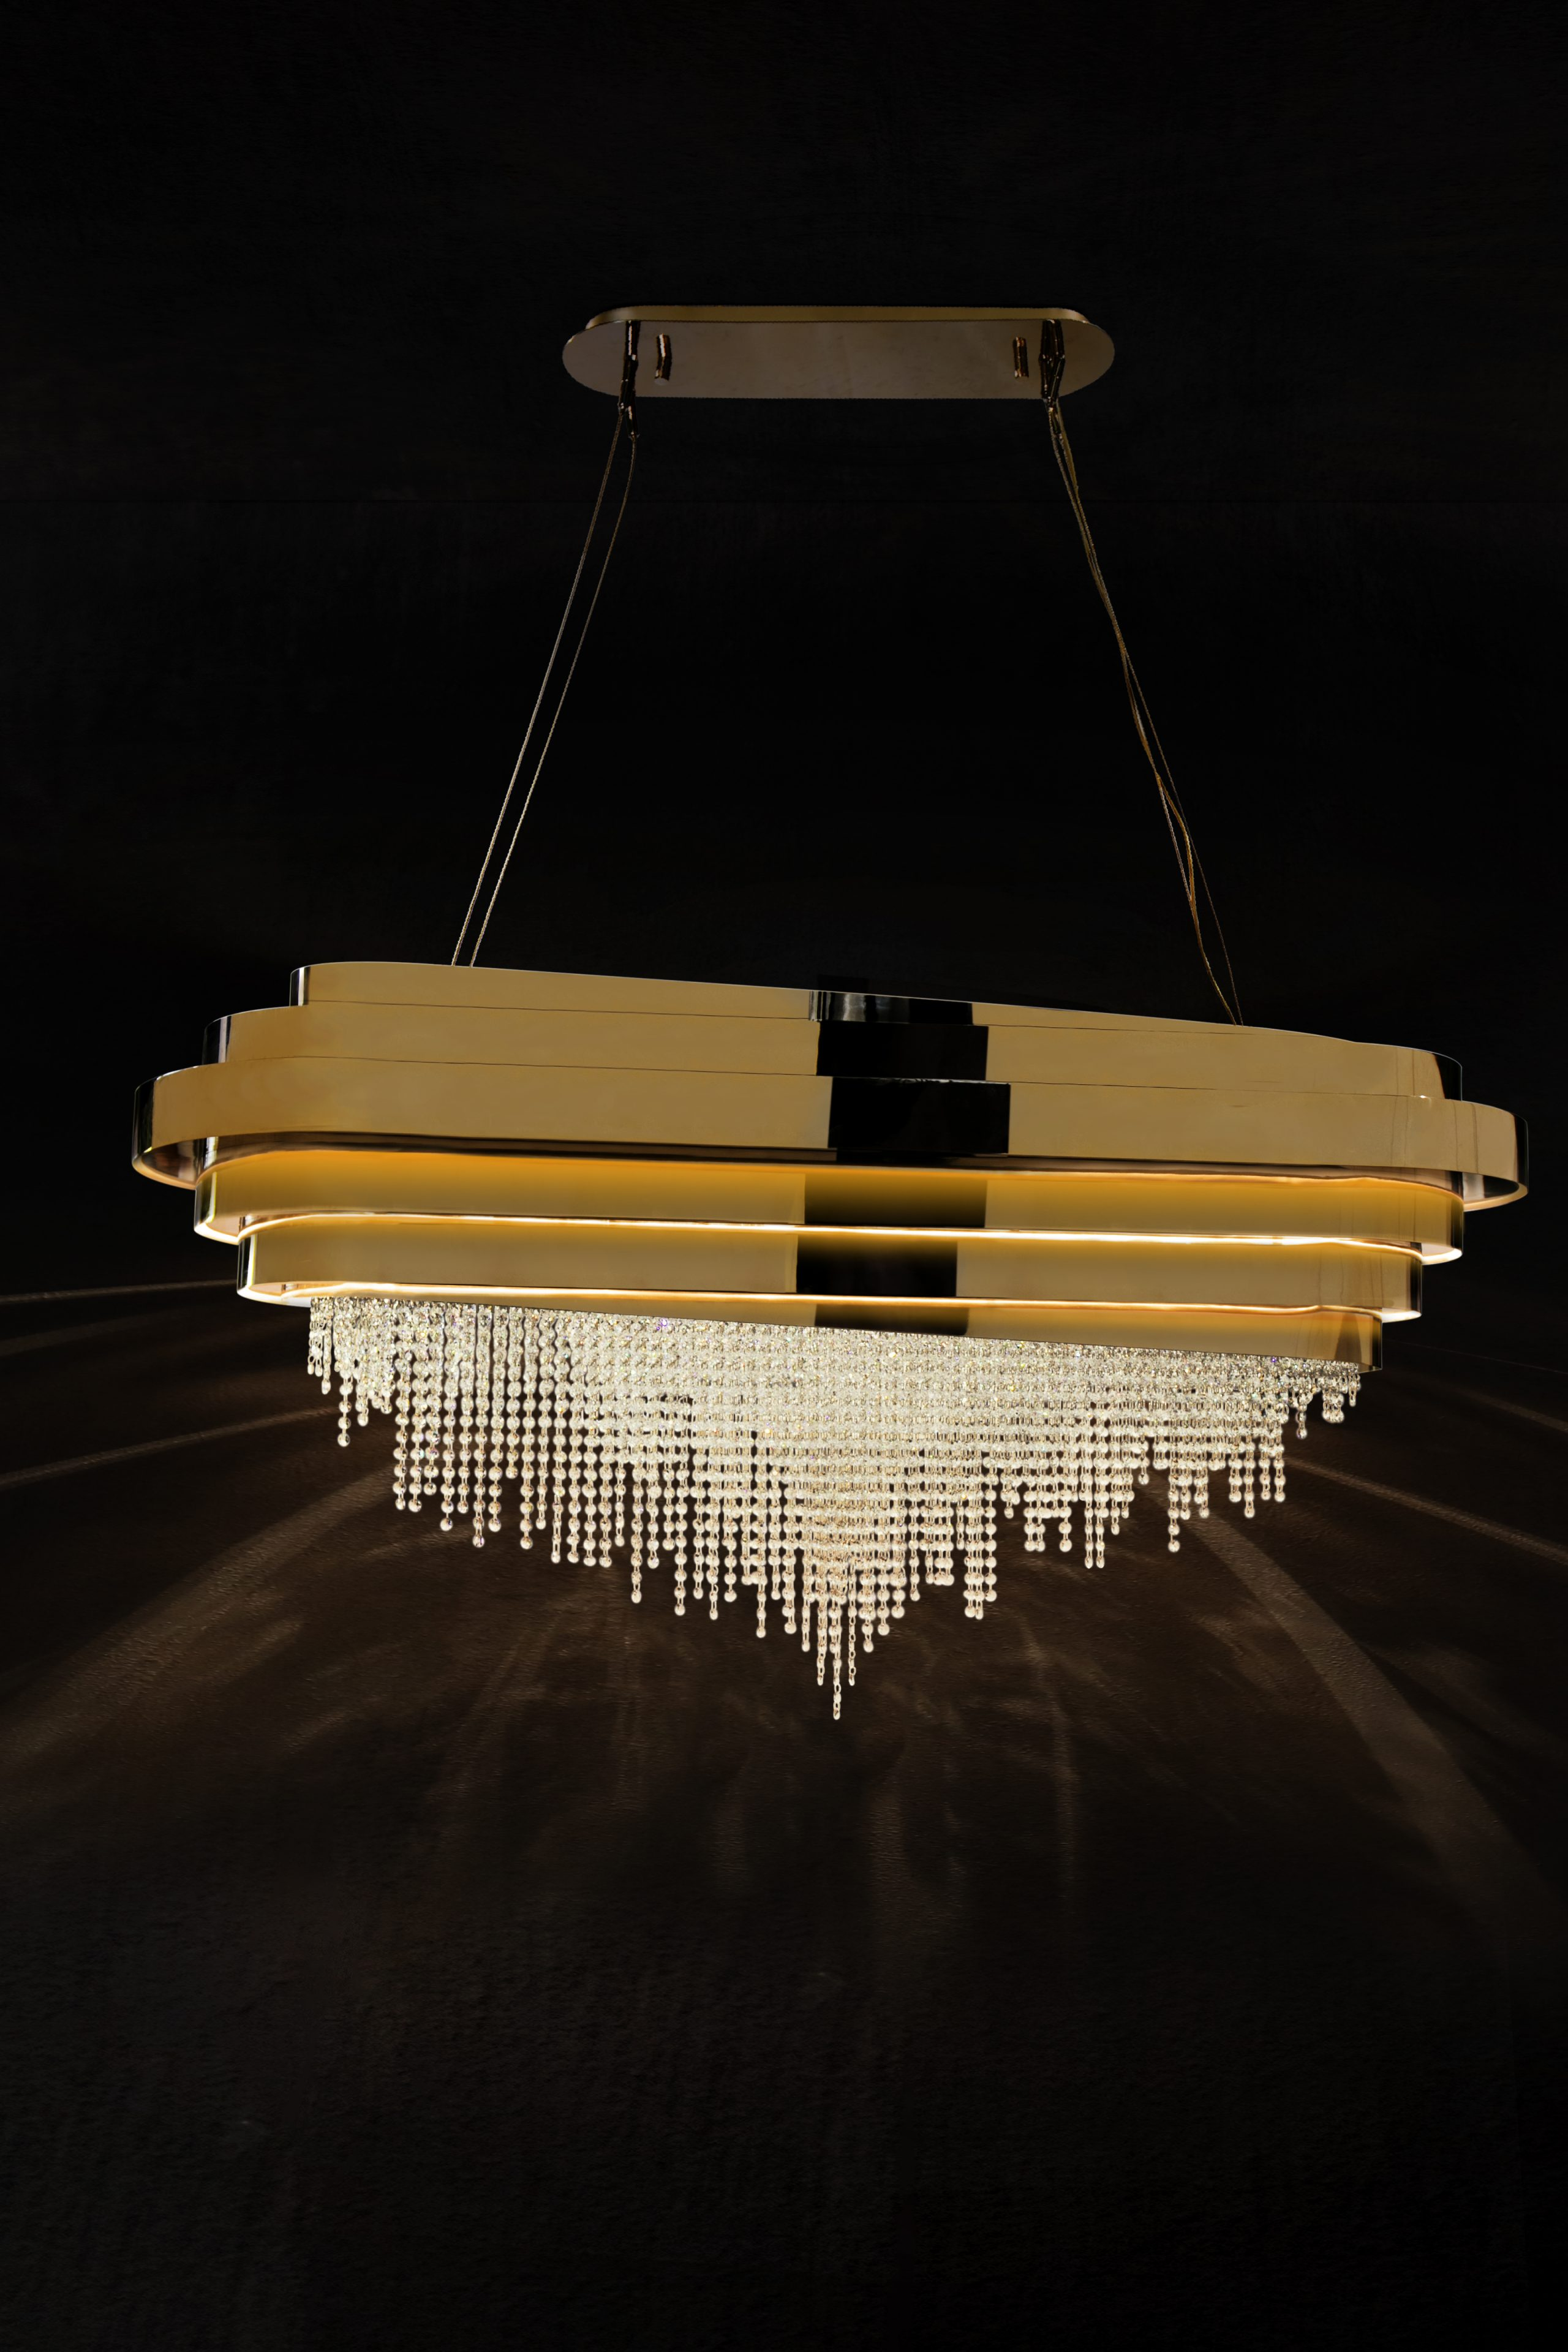 Suspension Lighting - The Sublime Curves Of Luxxu´s Snooker Suspensions